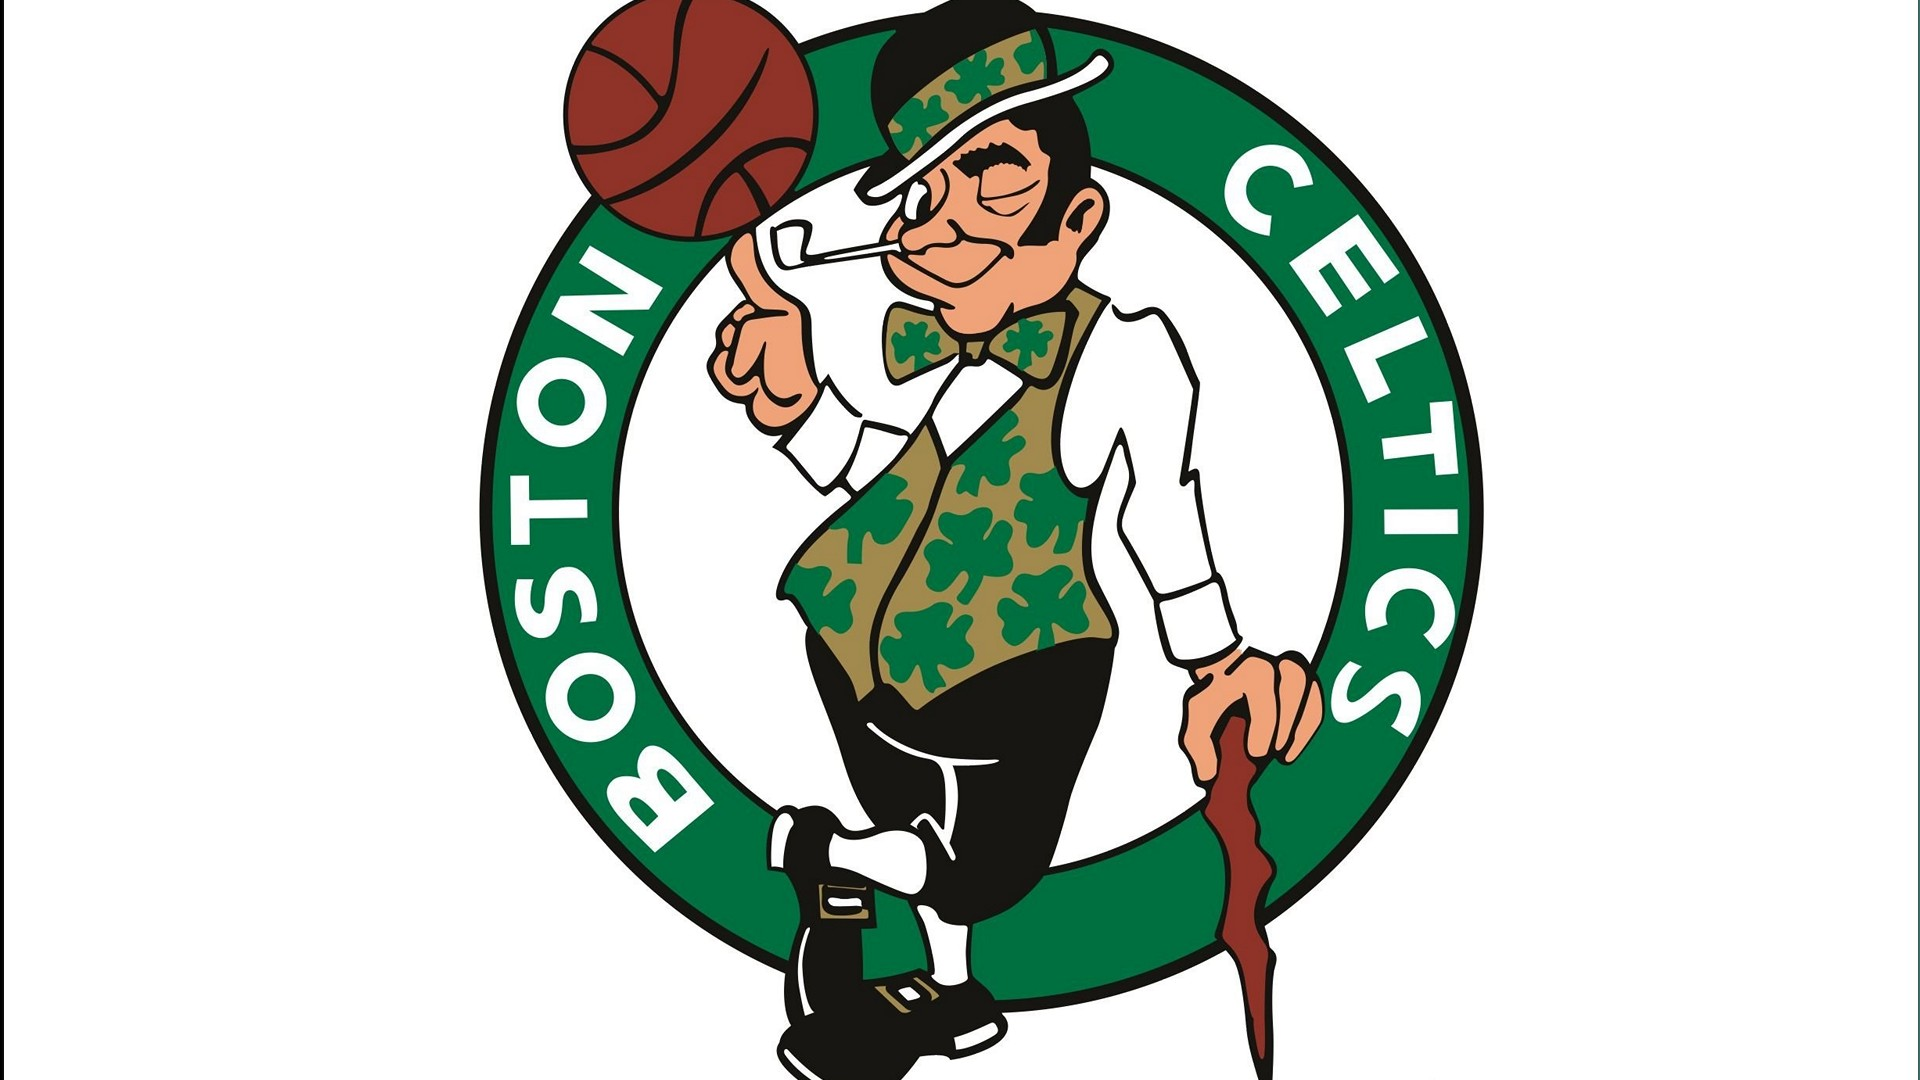 Free Celtics Ticket for Making Honor Roll | The Voice